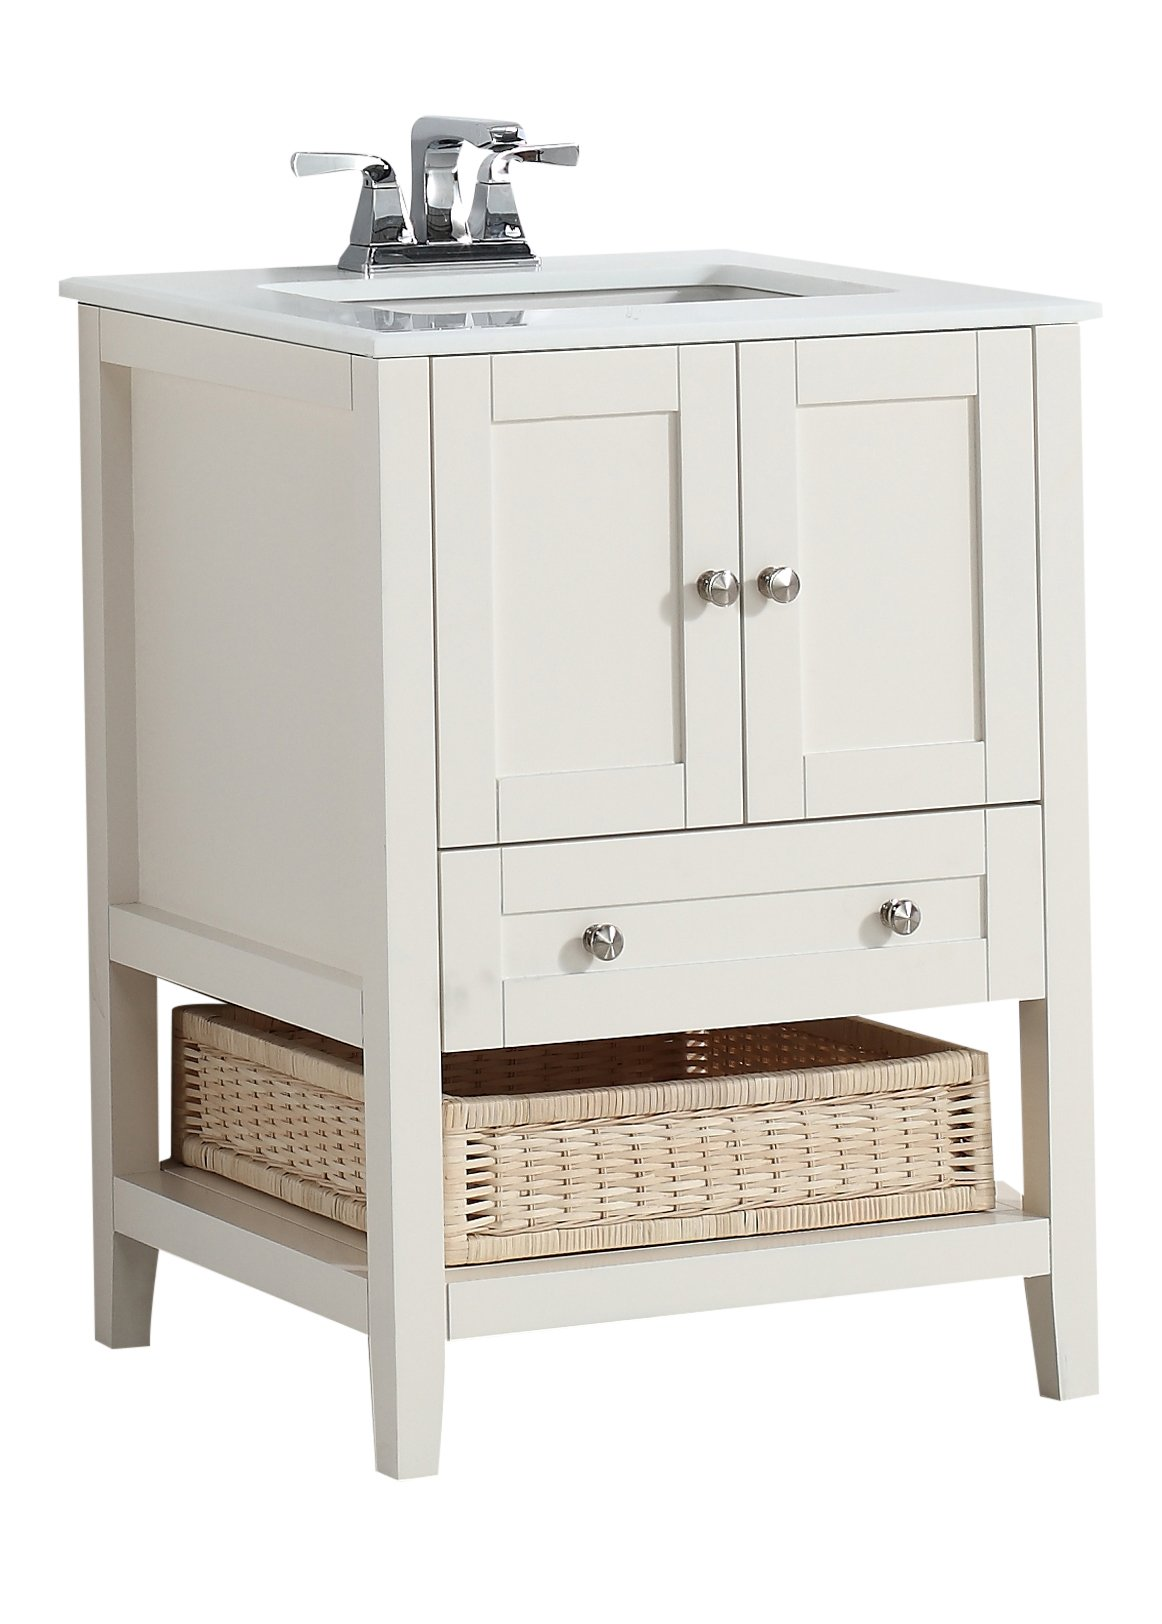 "Simpli Home 4AXCVCCW-24 Cape Cod 24 inch Contemporary Bath Vanity in Soft White with White Engineered Quartz Marble Top - Single sink bathroom vanity with two doors, one bottom drawer and open storage area with basket, hardwood frame and legs Vanity color: Off White with Brushed Nickel knobs Overall Vanity Size with Top: 25"" w x 21.5"" d x 34.5"" h - bathroom-vanities, bathroom-fixtures-hardware, bathroom - 715HYa8bdZL -"